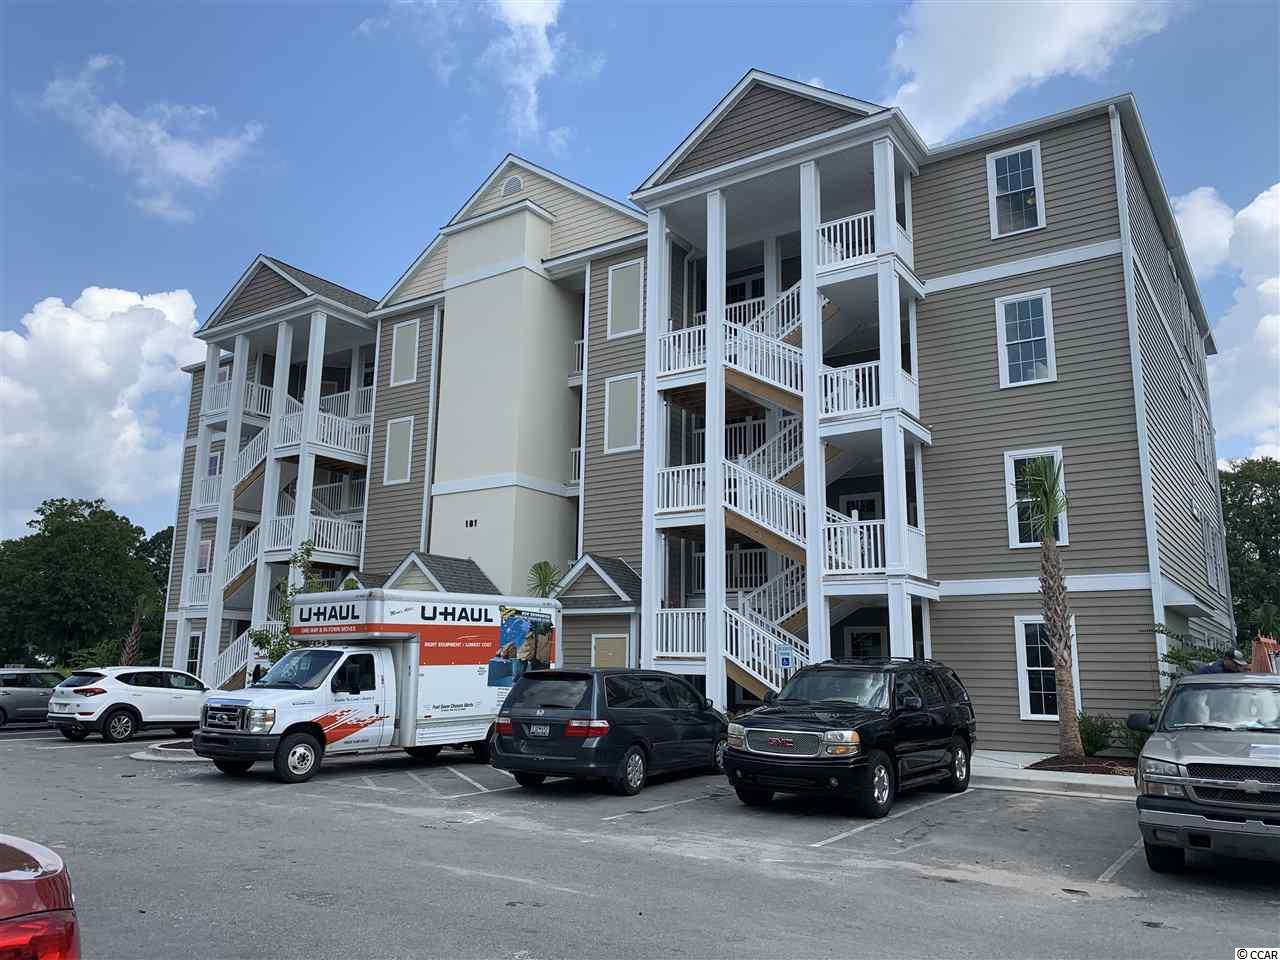 Located in one of the most successful condo developments in the Myrtle Beach area, this top floor end unit is a 3 bedroom 2 bathroom beautiful condo in the very popular Queens Harbour! Building has an oversized ELEVATOR to all floors, outside storage, split bedroom floor plans with entry to the Master Suite from the Family Room, 9' smooth ceilings and a screen porch. The location is superb with shopping, dining and recreation steps away. The amenity package includes a resort style swimming pool with a club house and conveniently located picnic areas with grills.